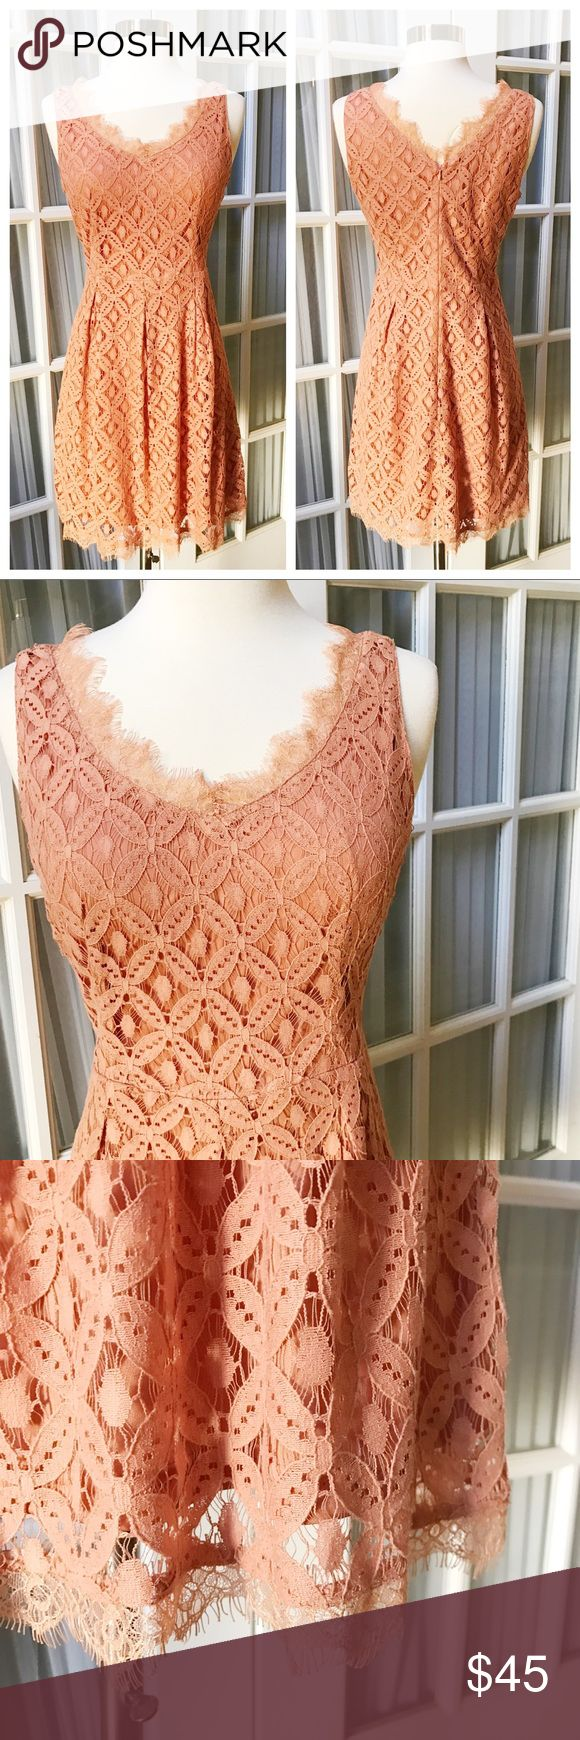 Stunning Muted Peach Lace Dress New with tags lace dress by Altar'd State! Delicate frayed detailing at hem and neckline. Muted peach color perfect for any season! Zipper up back Fits like a 6/8. Altar'd State Dresses